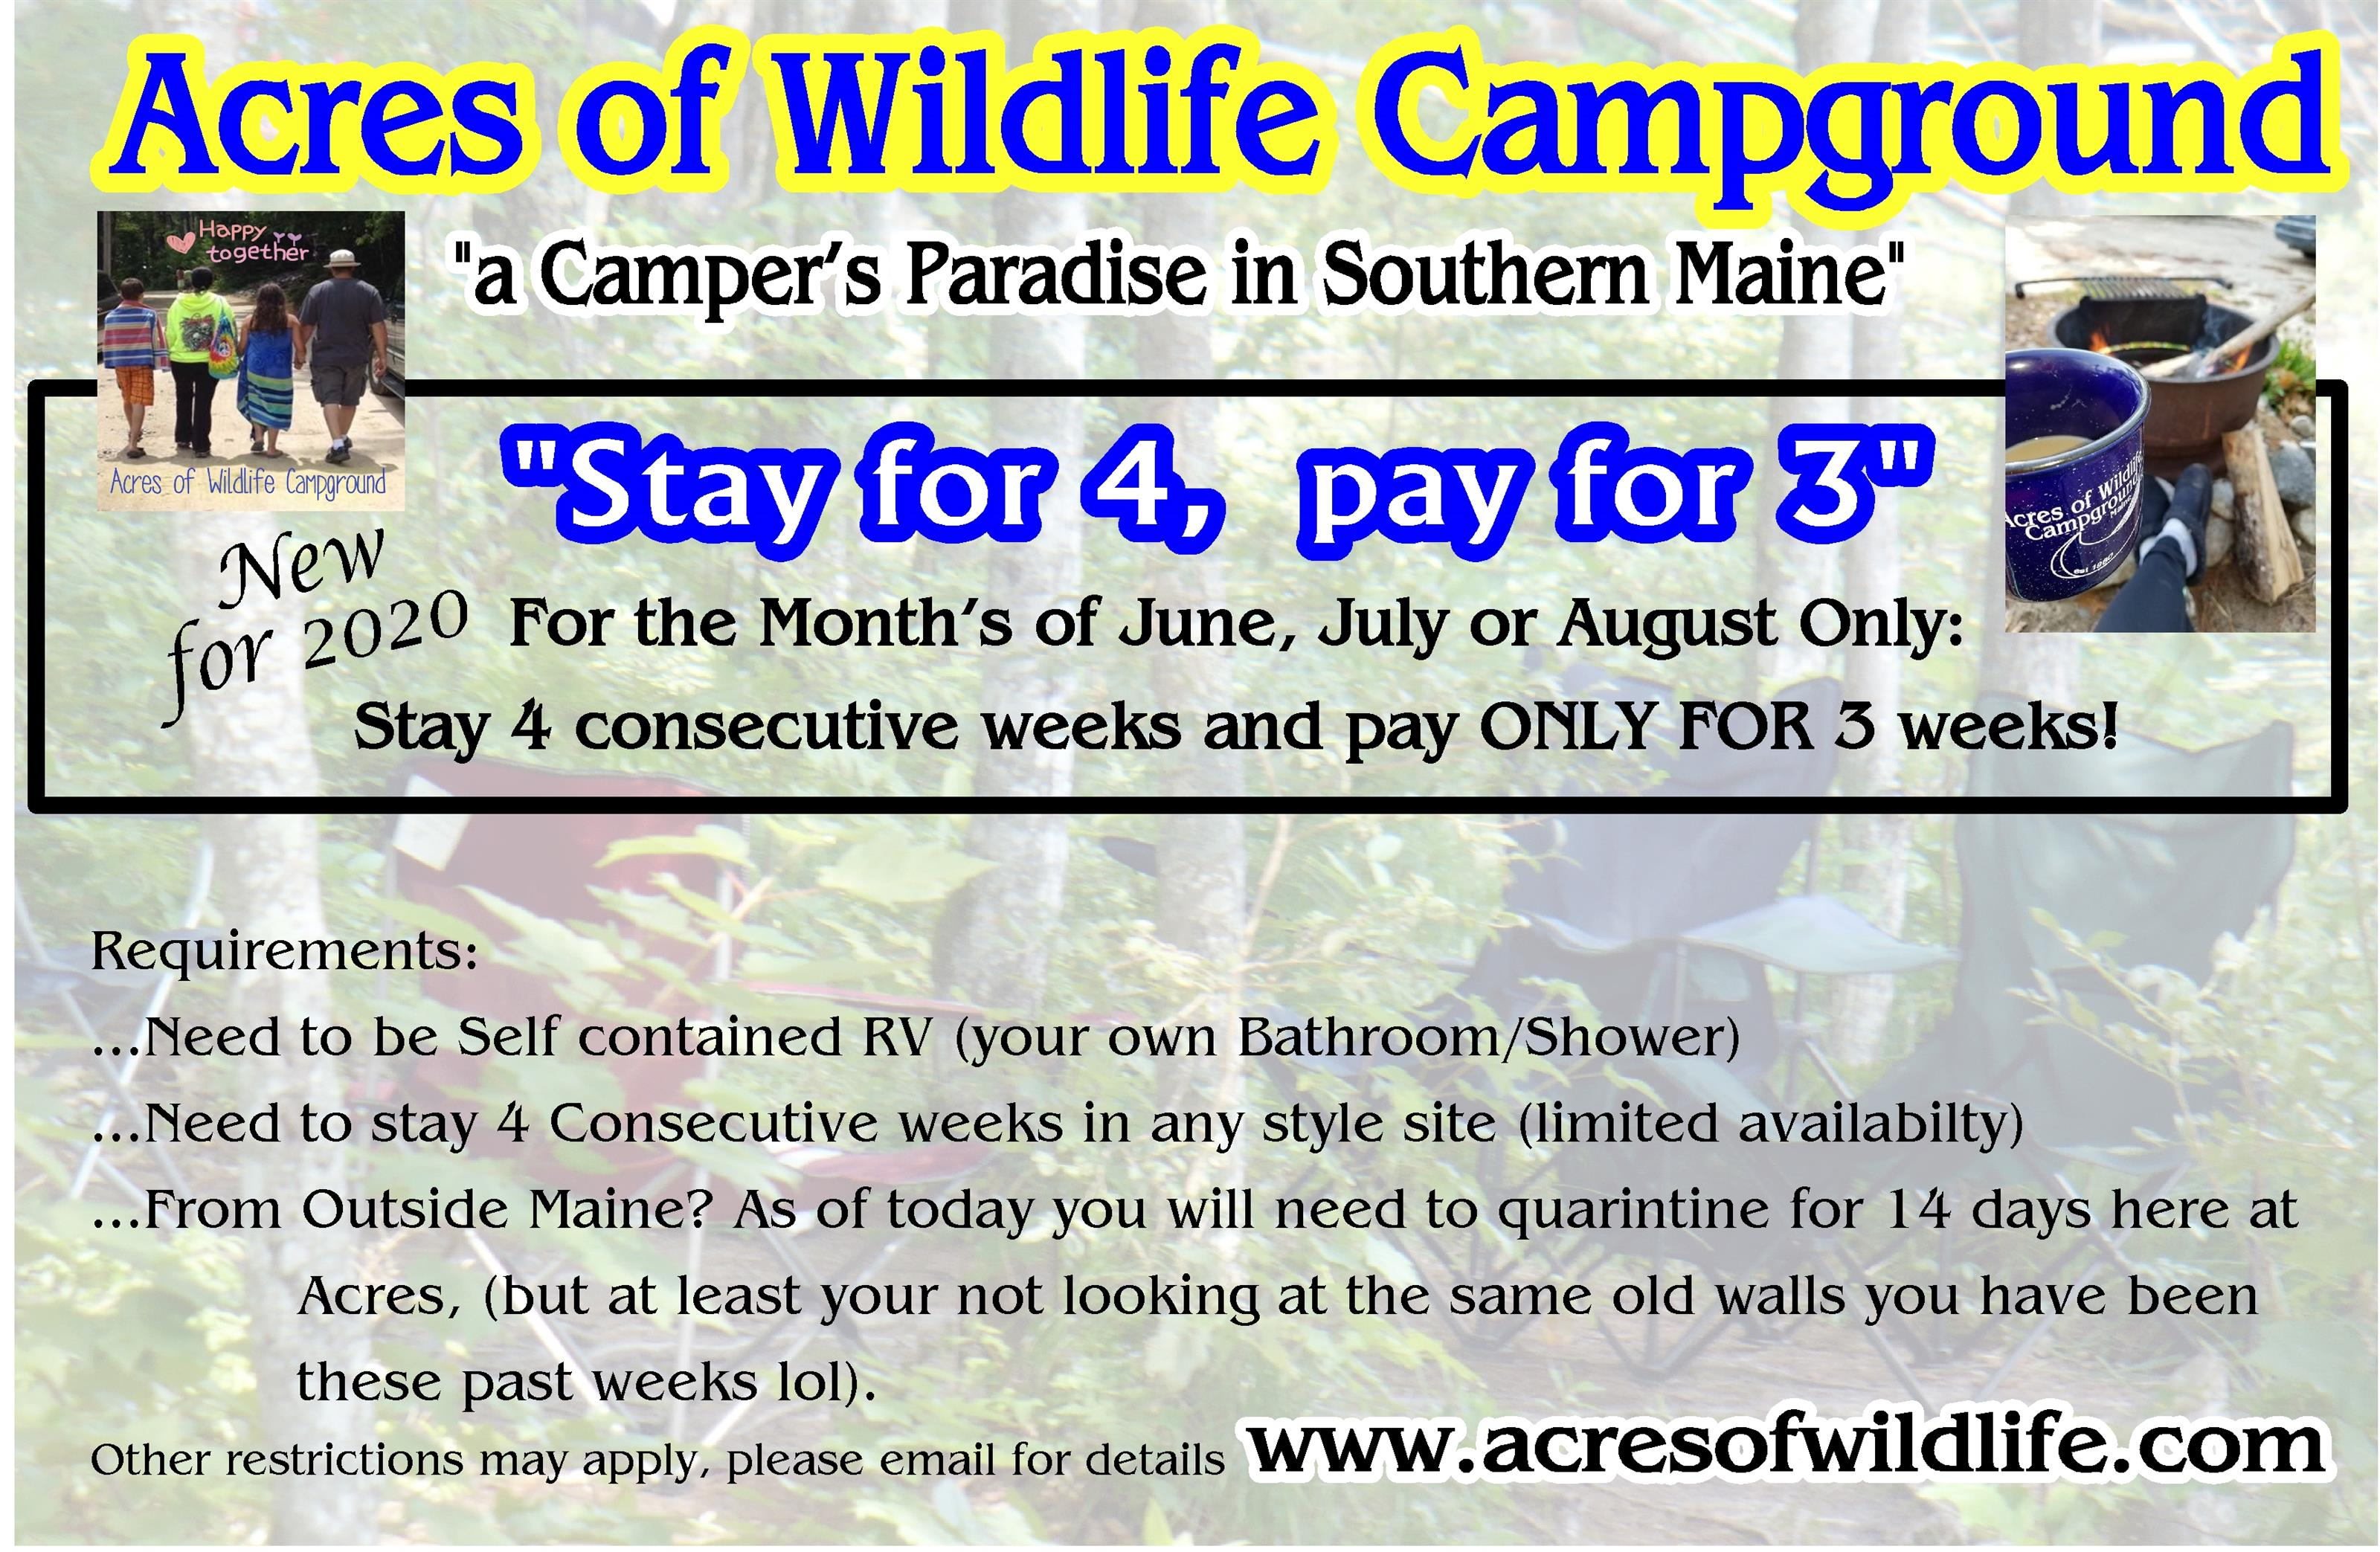 Acres of Wildlife campground | a camper paradise in souther maine | Stay for 4, pay for 3 | new for 2020 | for the months of june, july or august only: stay 4 consecutive weeks and pay only for 3 weeks! Requirements: - need to be self contained rv (your own bathroom/shower) - need to stay 4 consecutive weeks in any style site (limited availability) - from outside main? as of today you will need to quarintine for 14 days here at acres, (but at least your not looking at the same old walls you have been these past weeks lol).